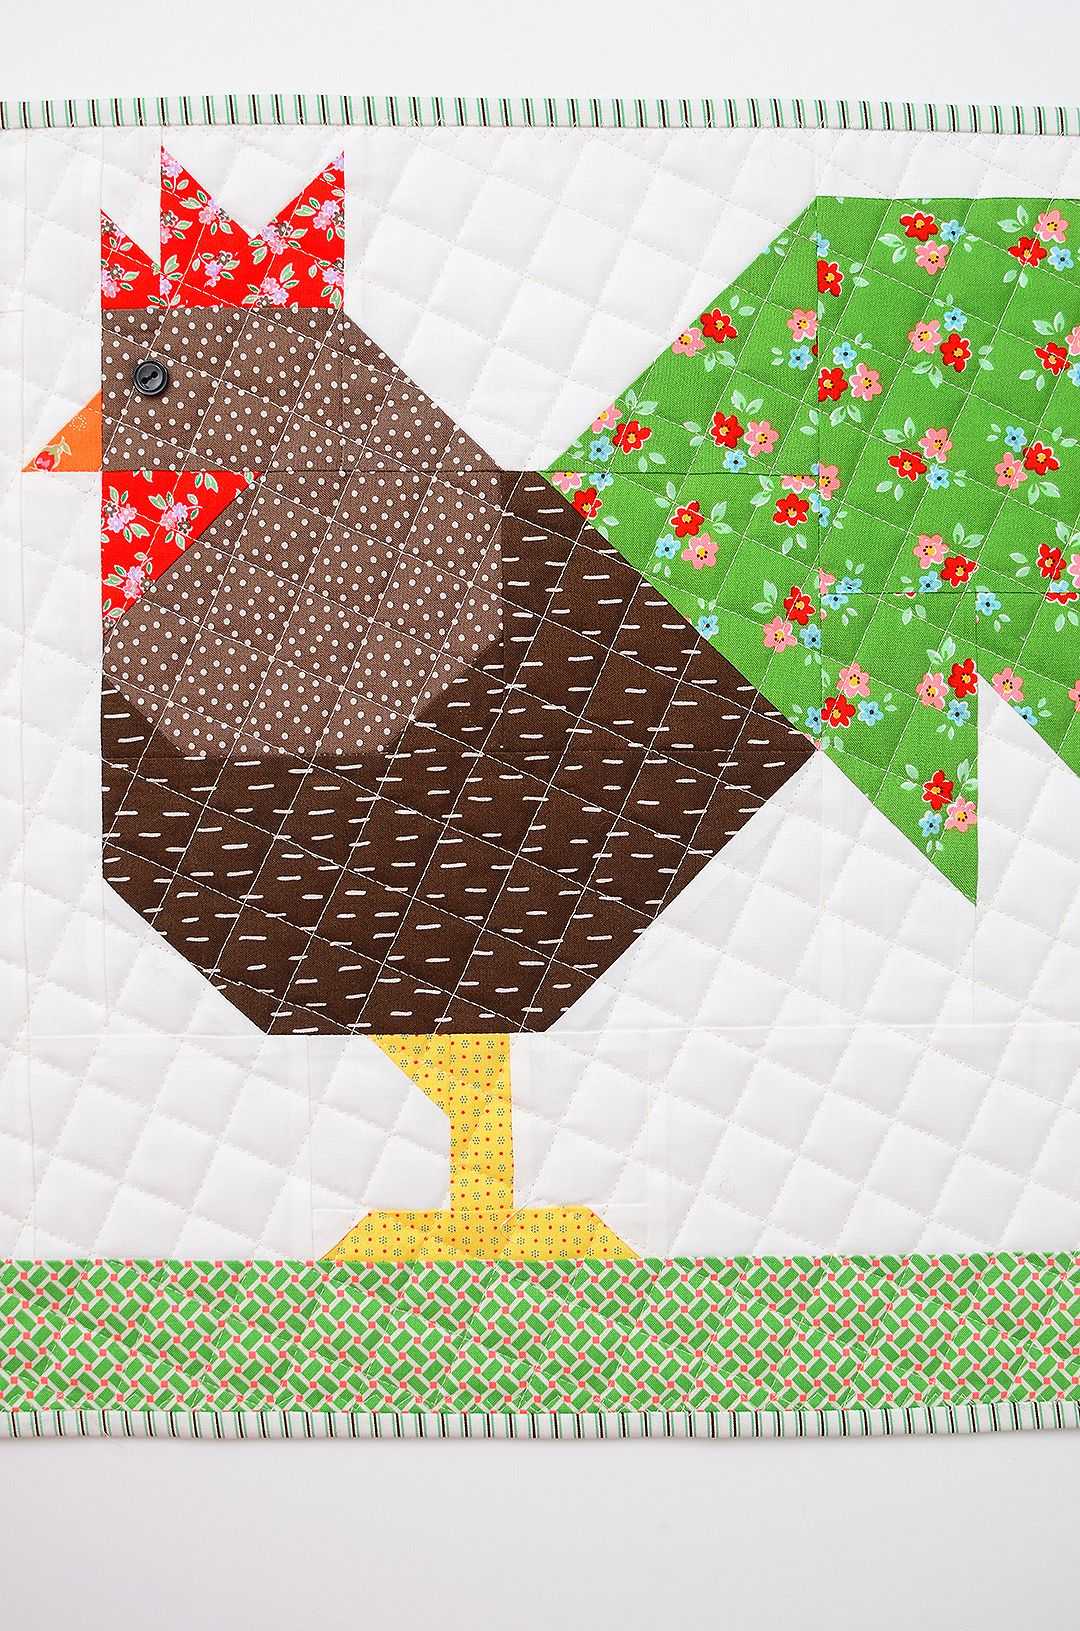 New Easter Quilt Patterns: Rooster Quilt Block + {free Table Runner Tutorial} - ellis & higgs